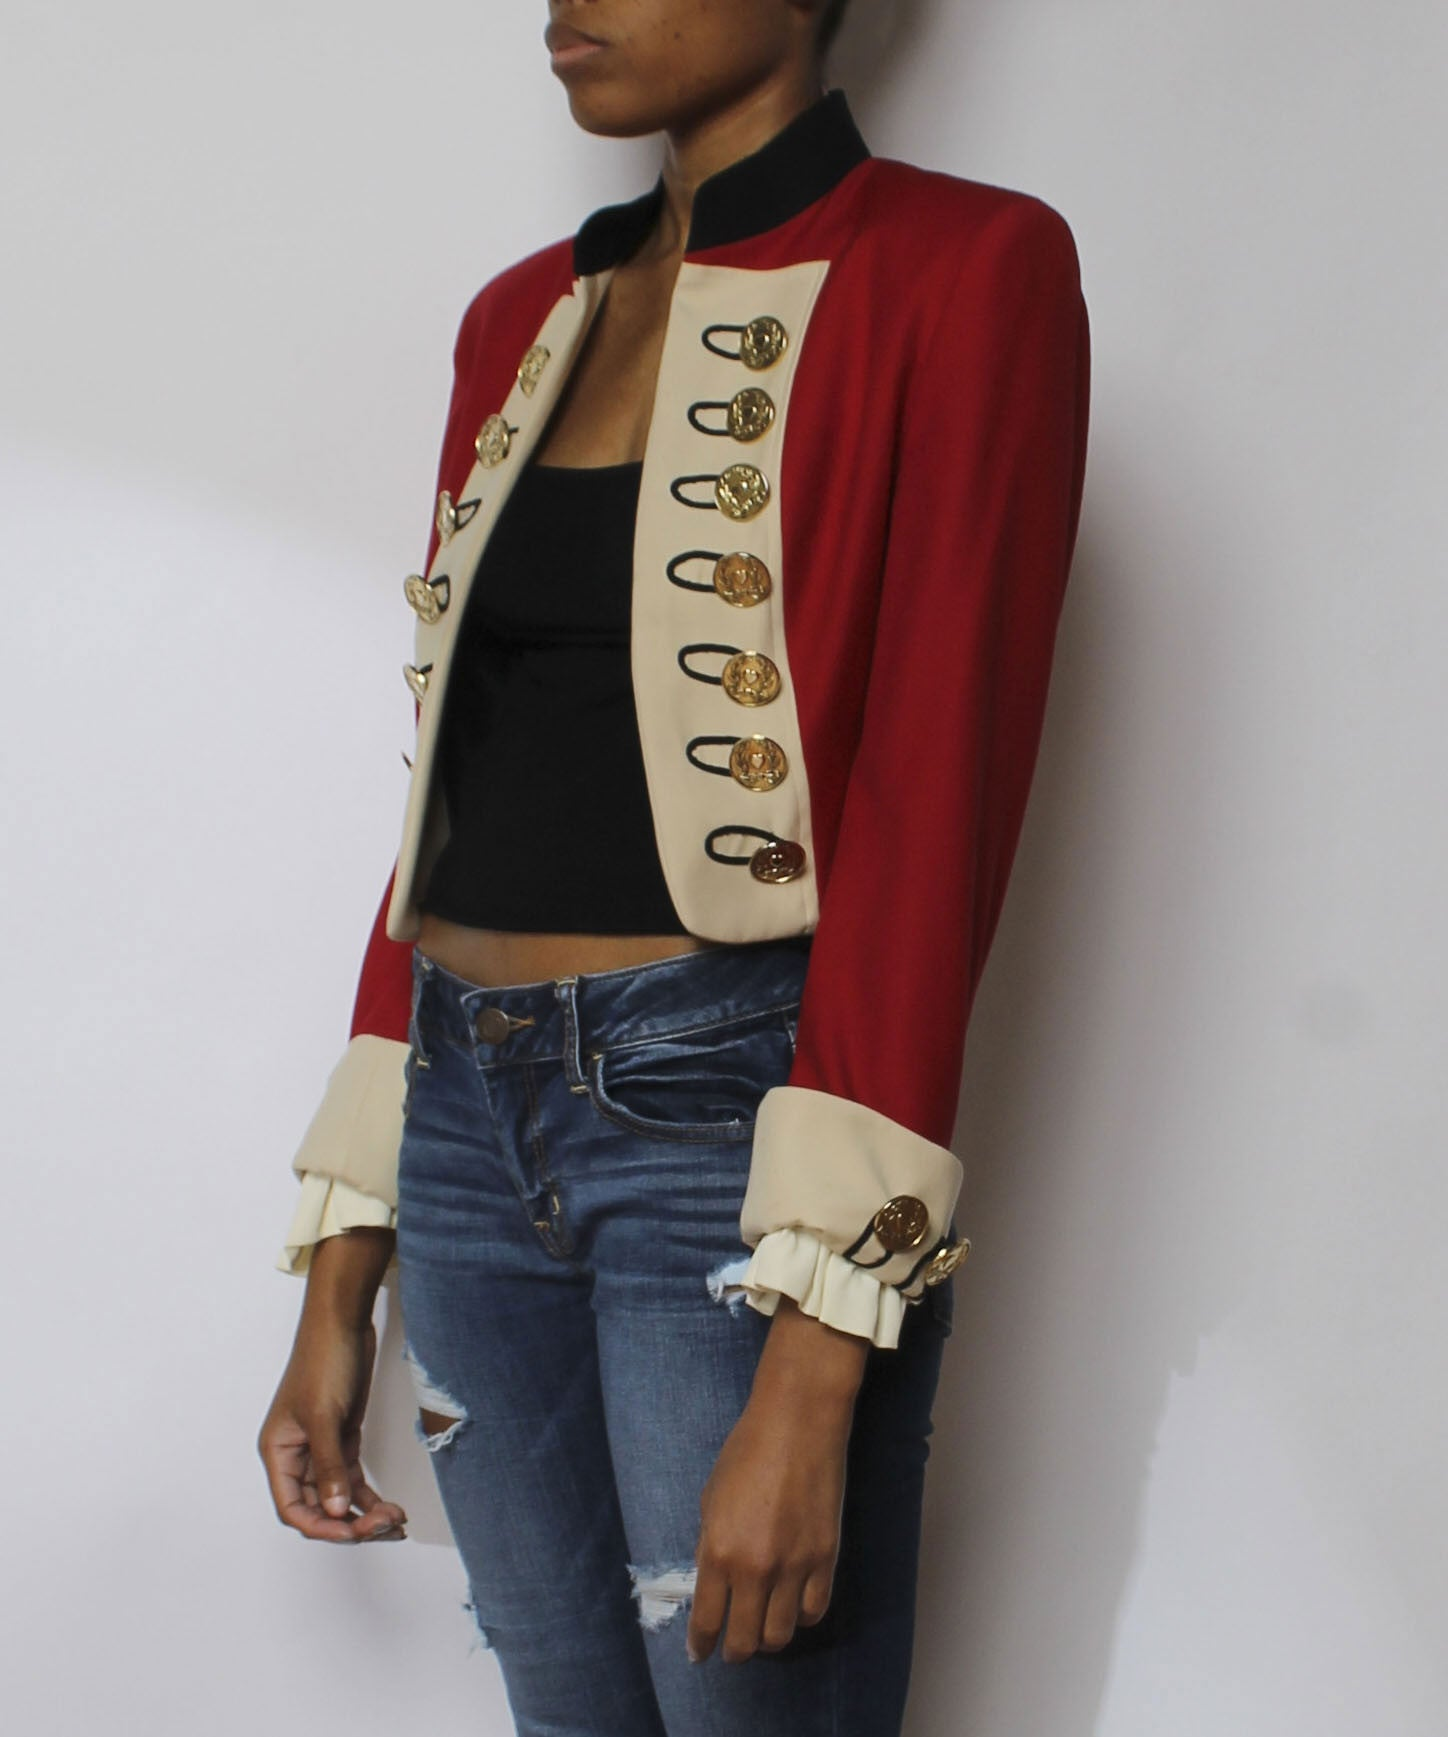 Moschino Cheap & Chic Cropped Marching Band Jacket